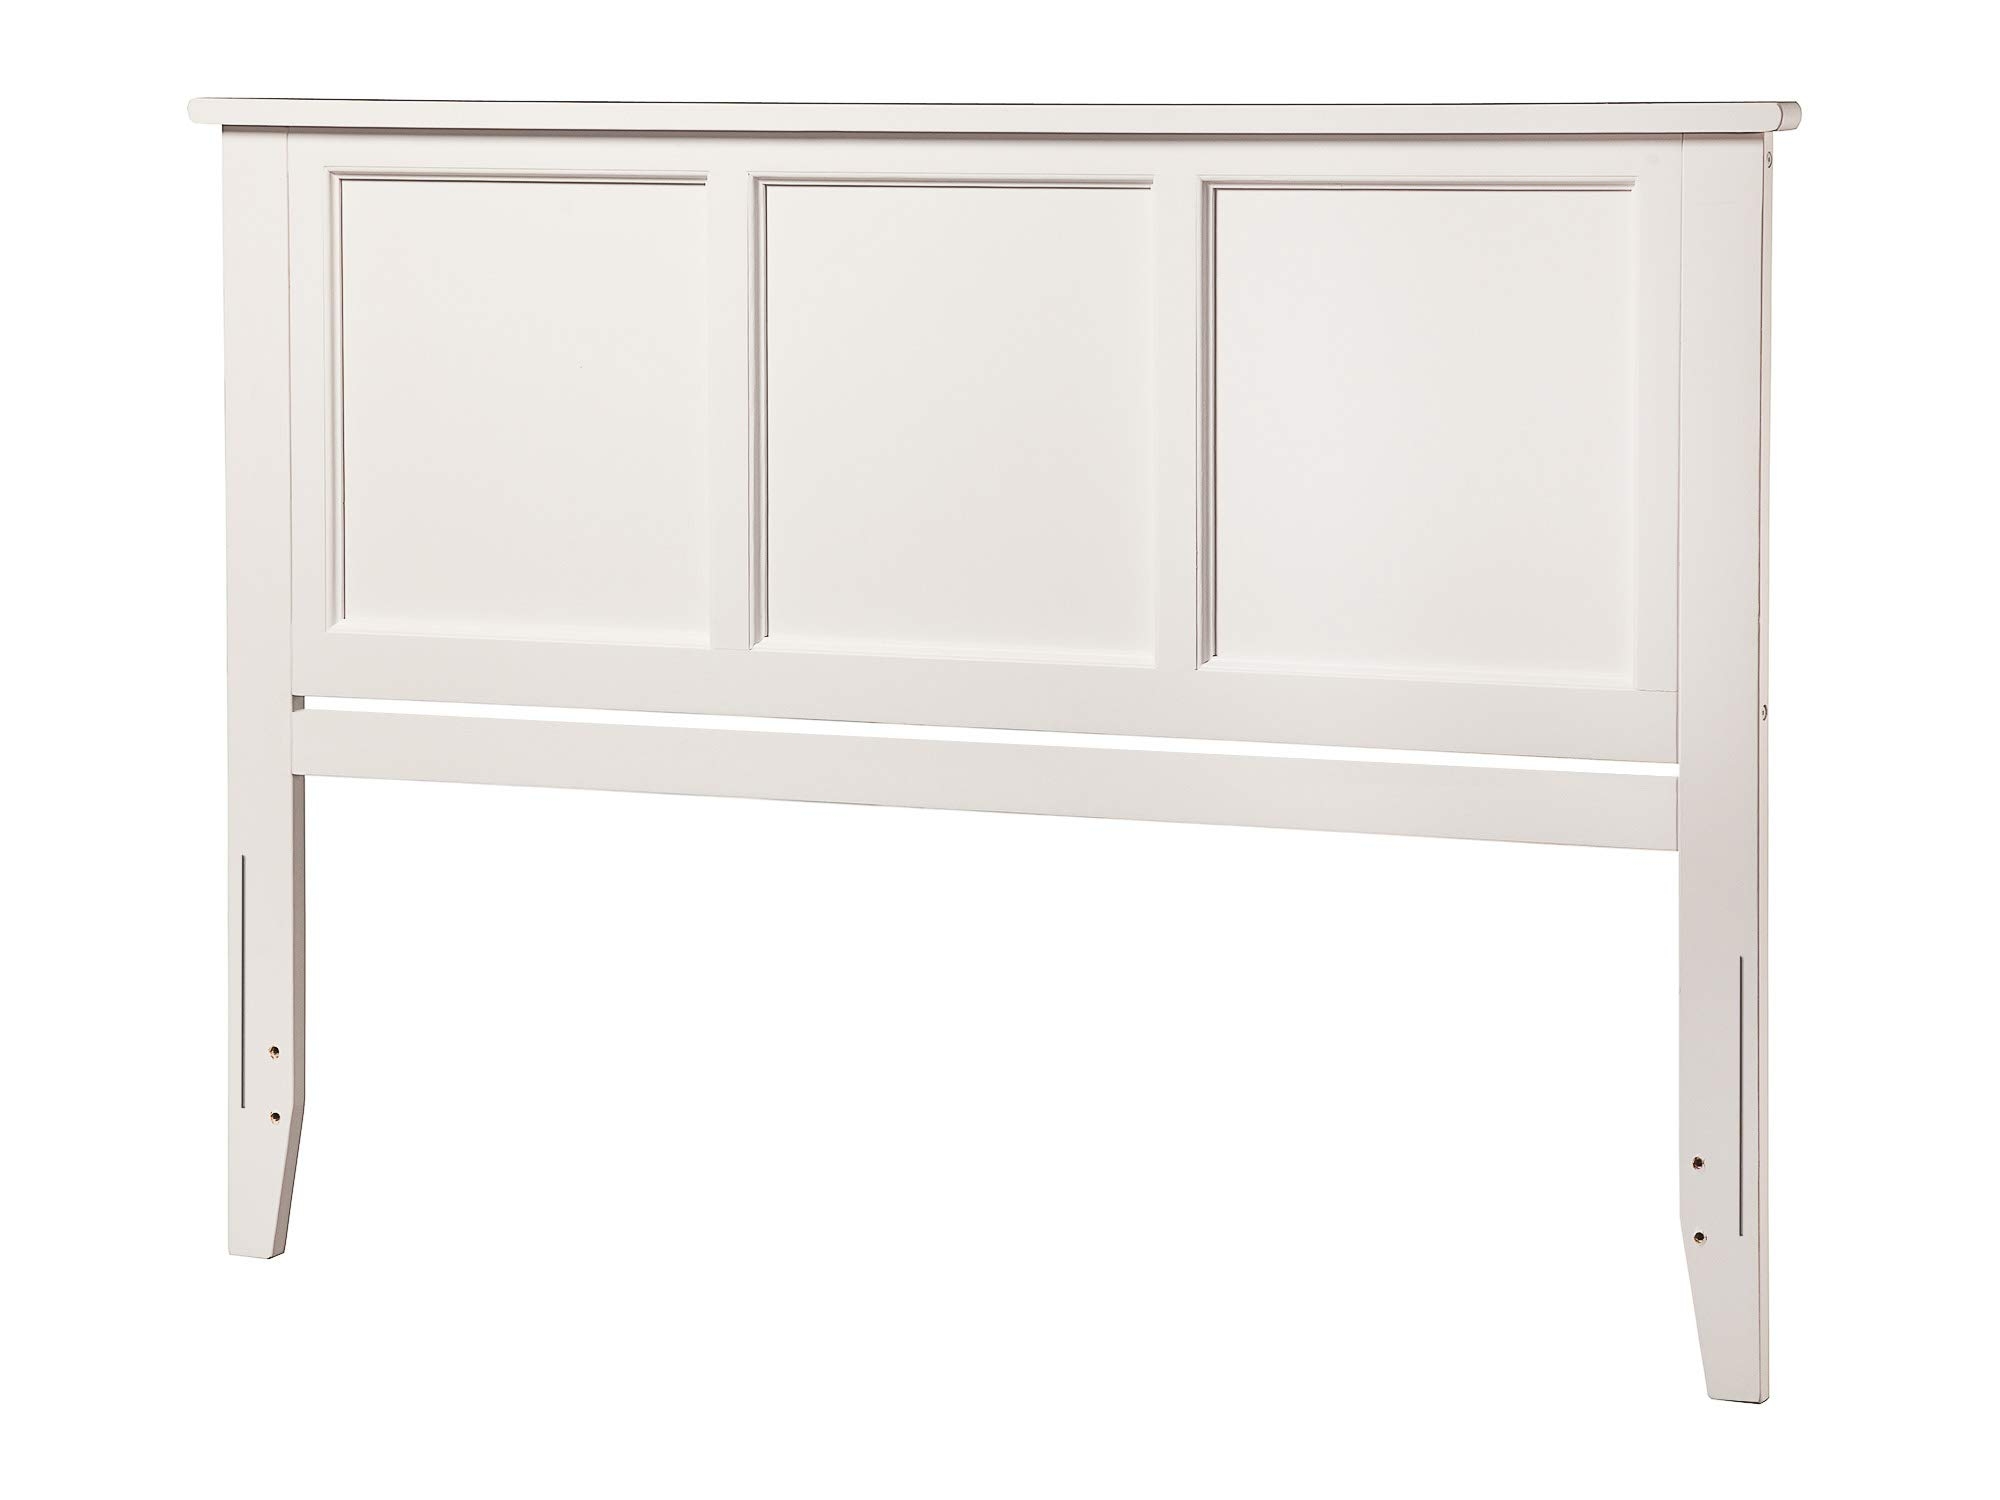 Atlantic Furniture AR286842 Madison Headboard, Queen, White by Atlantic Furniture